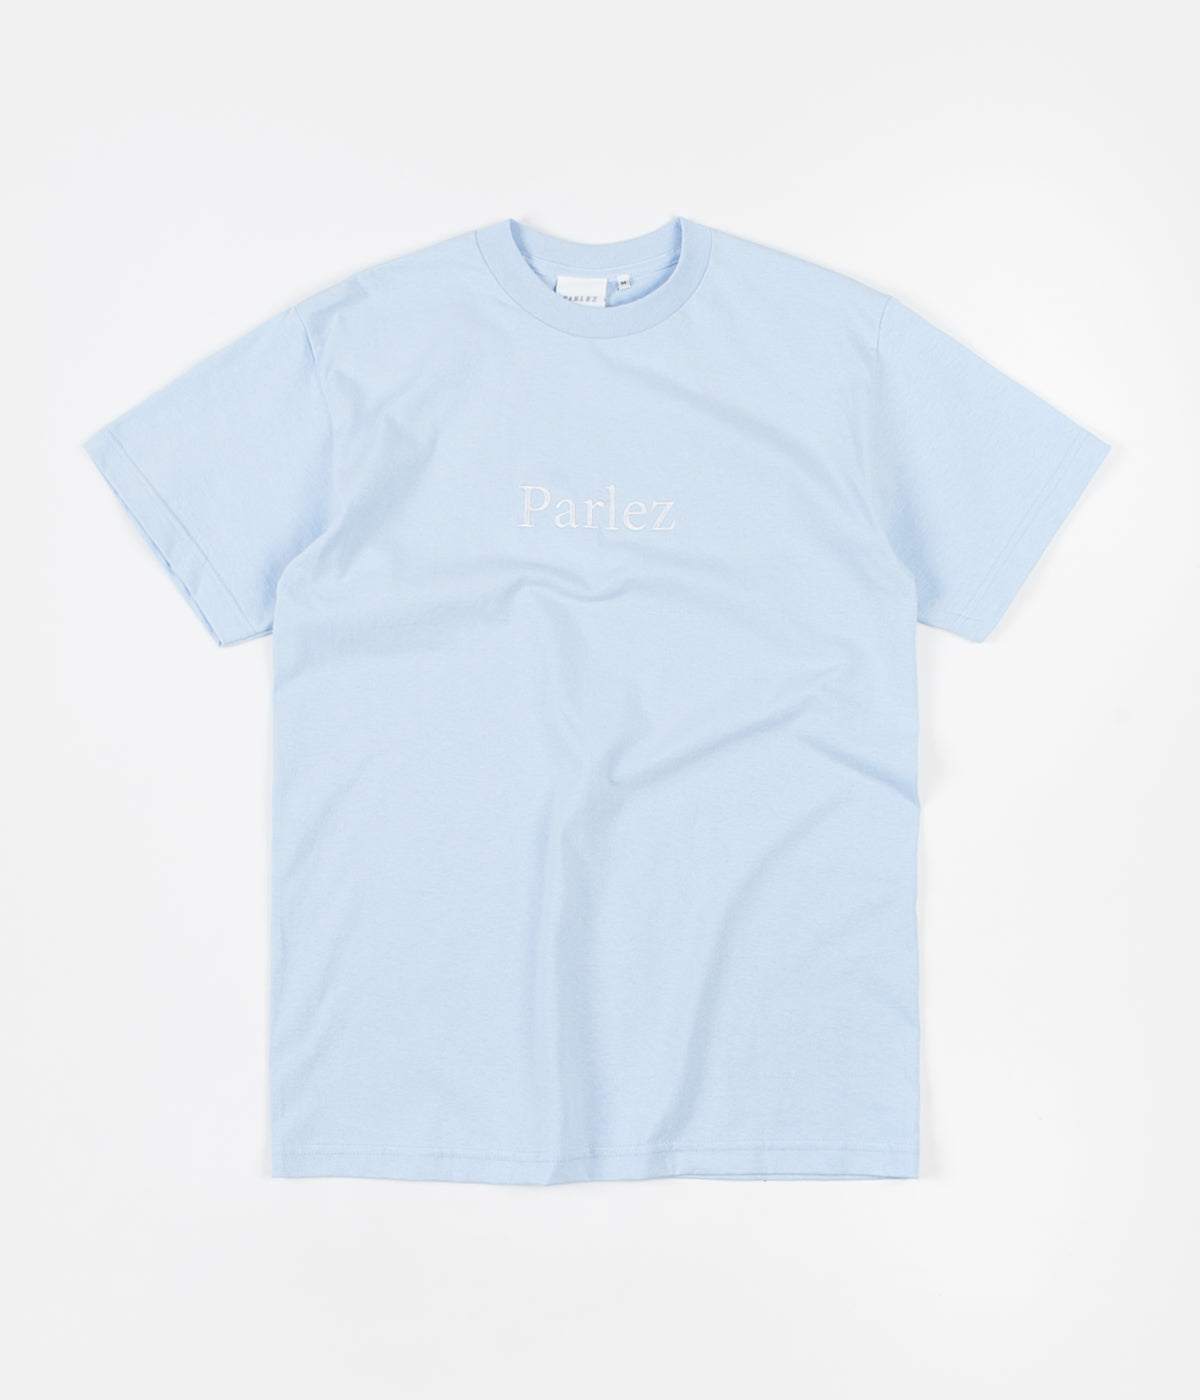 Parlez Skutsje T-Shirt - Powder Blue